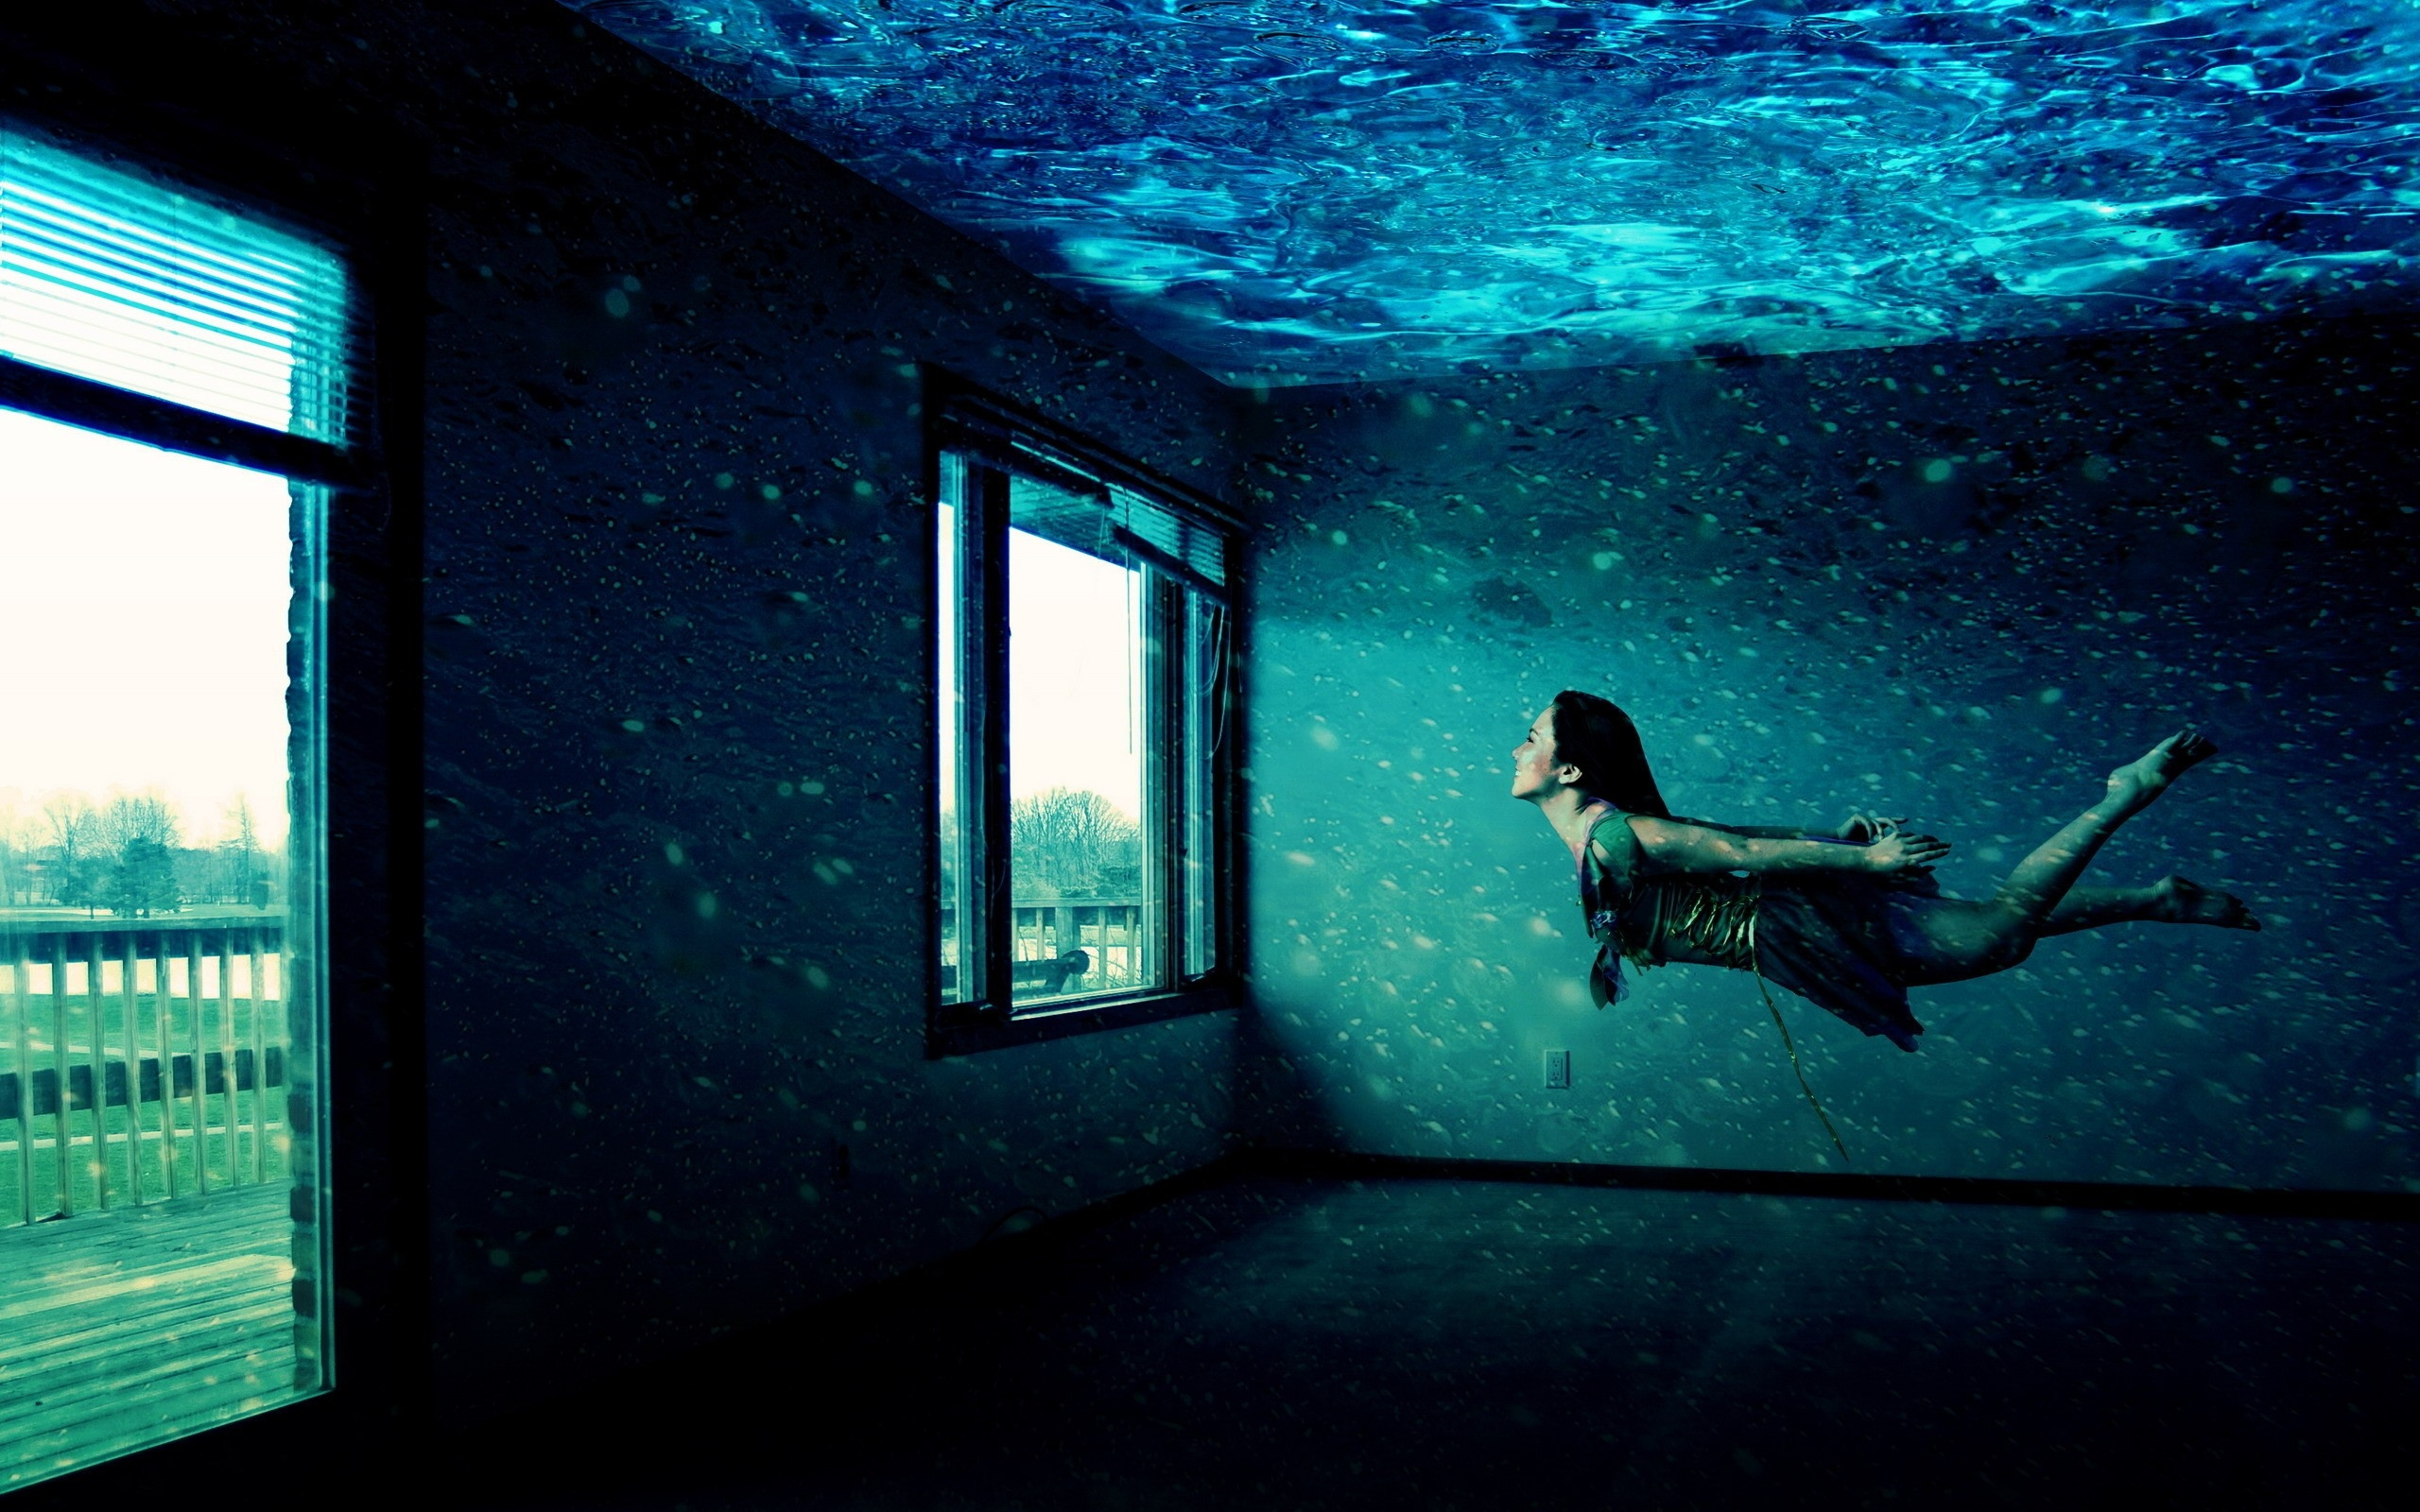 Girl under Water wallpapers and images   wallpapers pictures photos 2560x1600